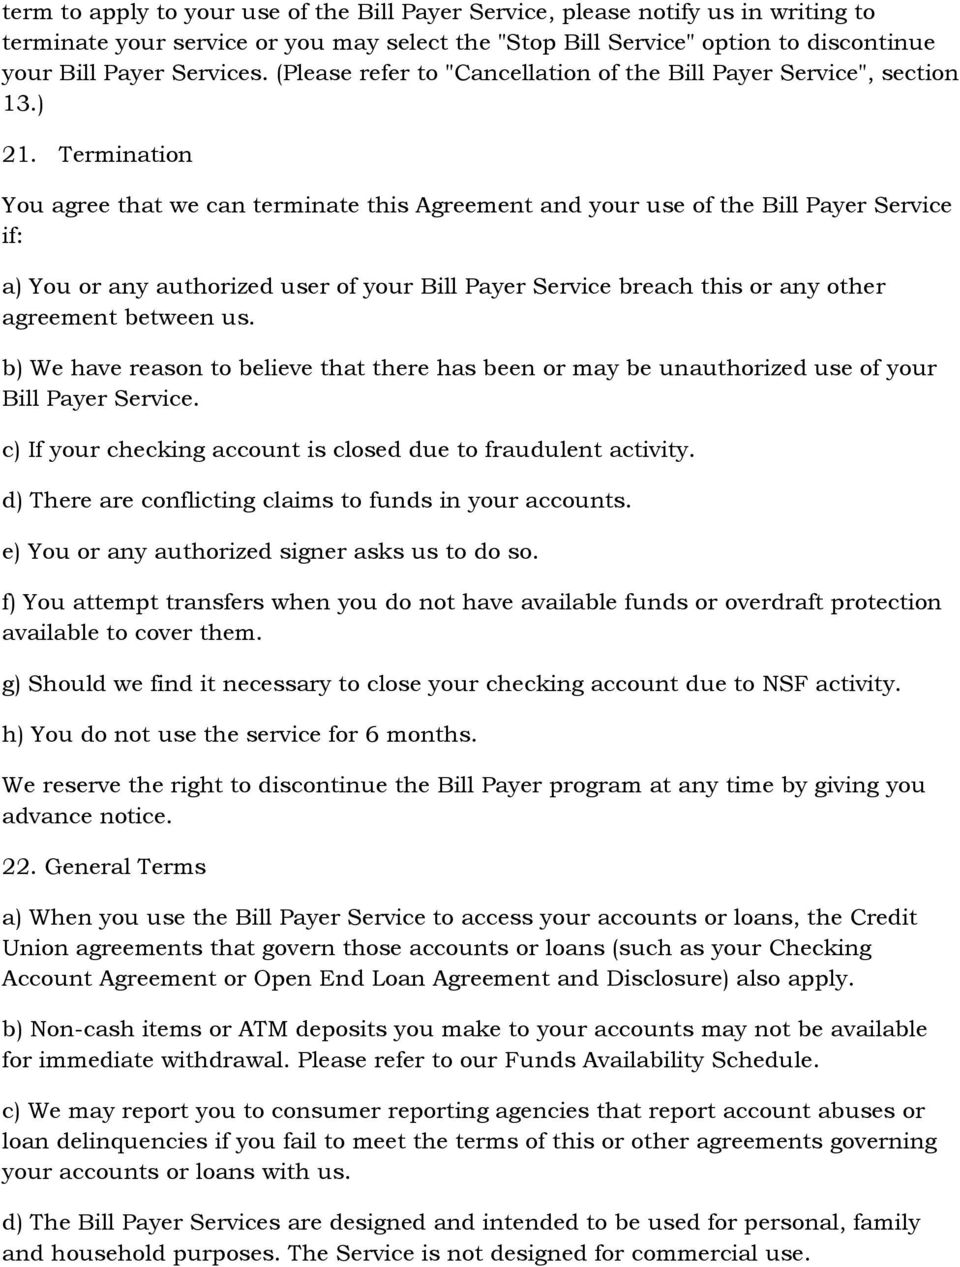 Termination You agree that we can terminate this Agreement and your use of the Bill Payer Service if: a) You or any authorized user of your Bill Payer Service breach this or any other agreement